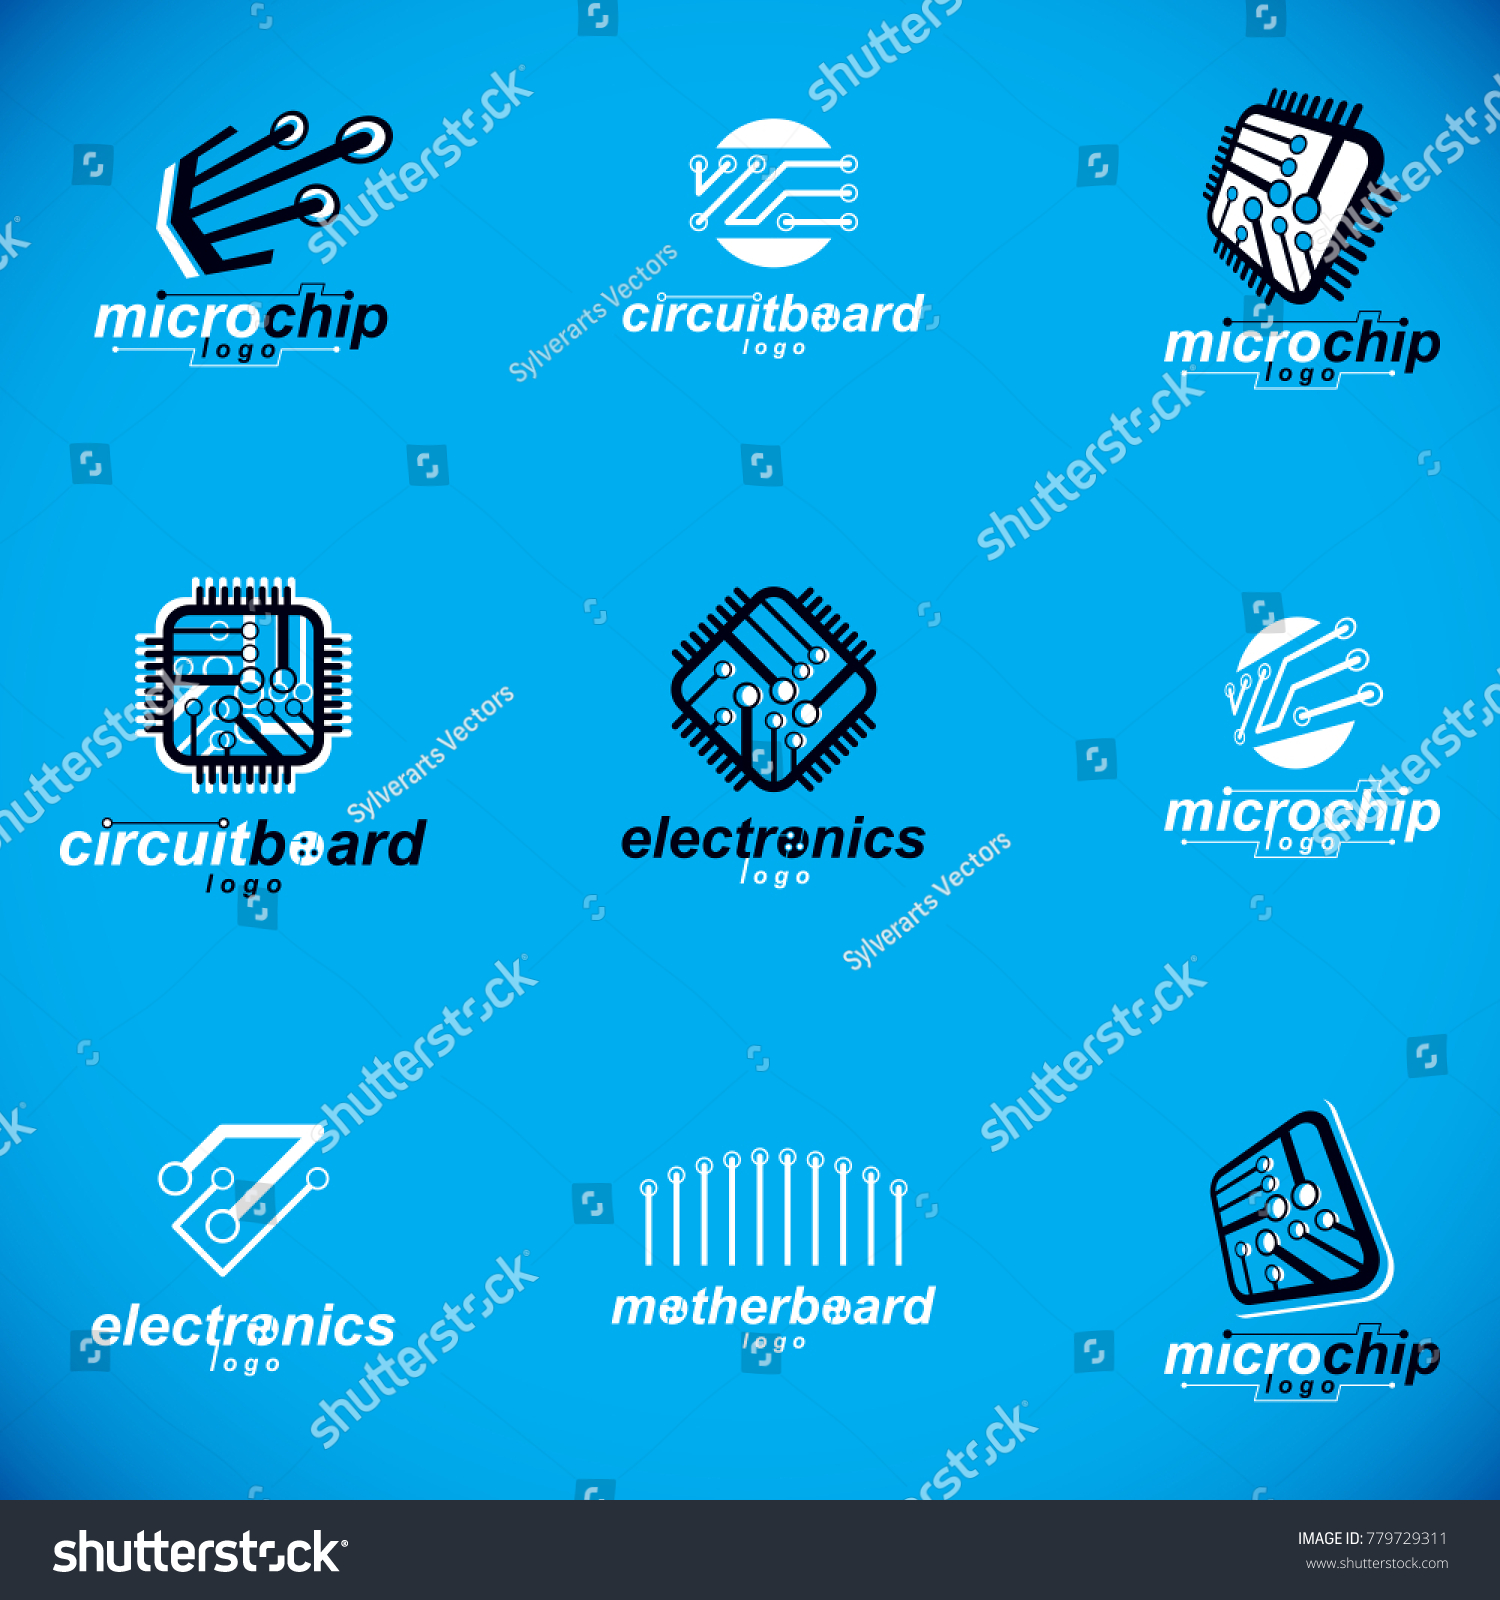 Technology Innovation Logos Set Vector Abstract Stock Design Elements Electrical Circuits Of Computer Circuit Board With Connections